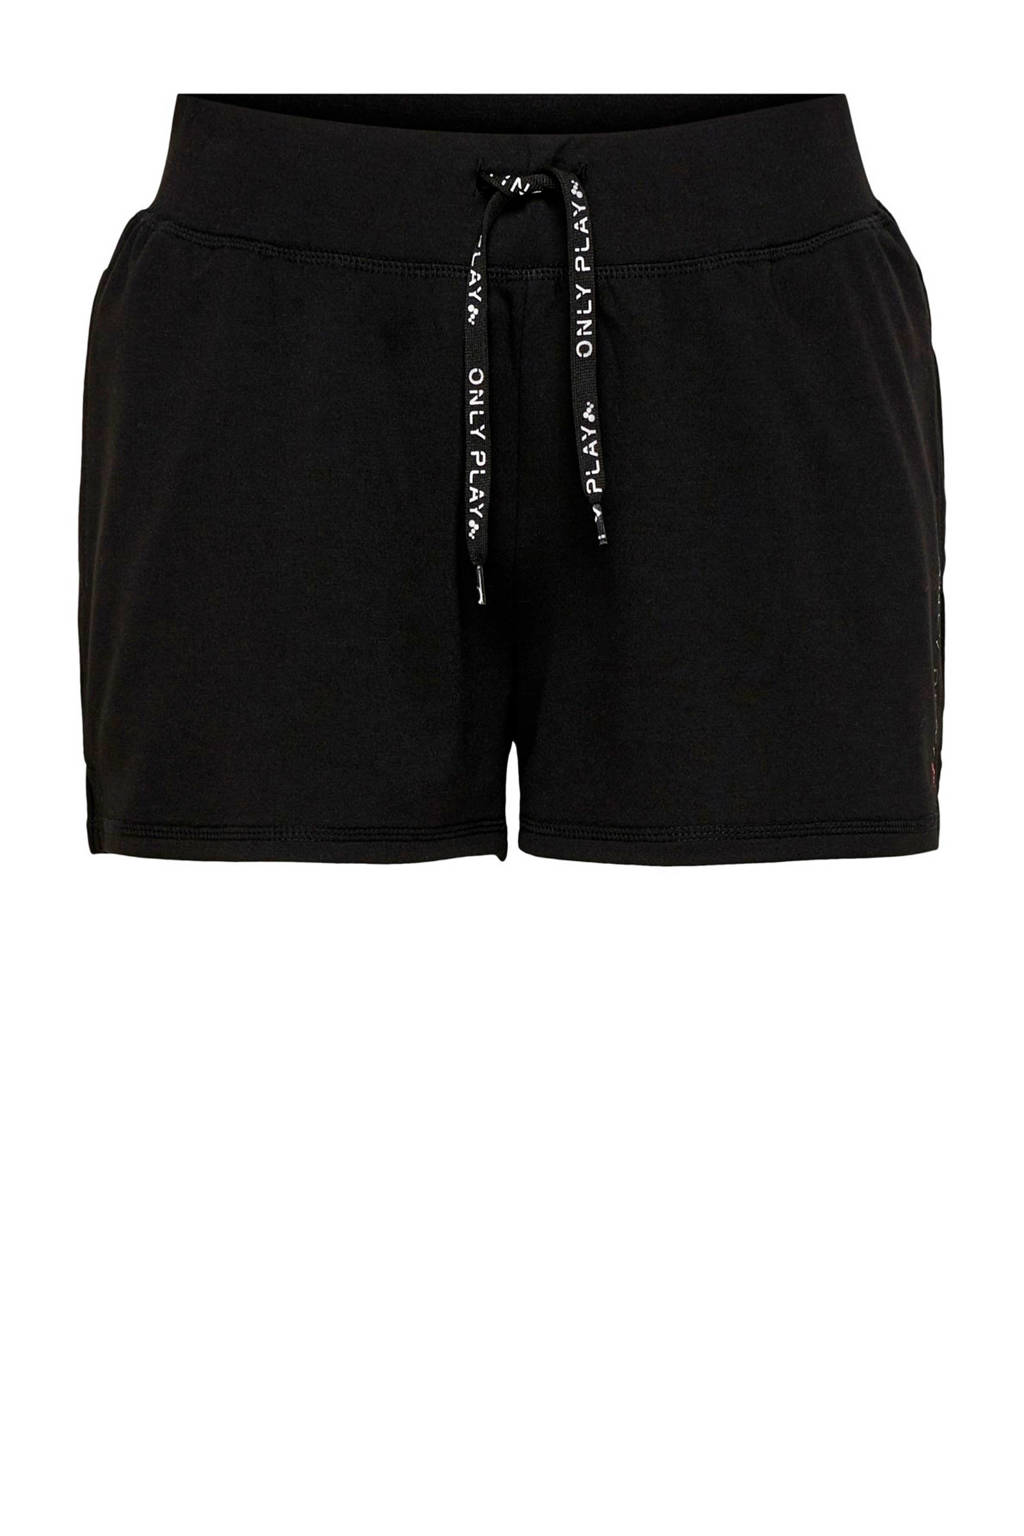 ONLY PLAY sportshort zwart, Zwart